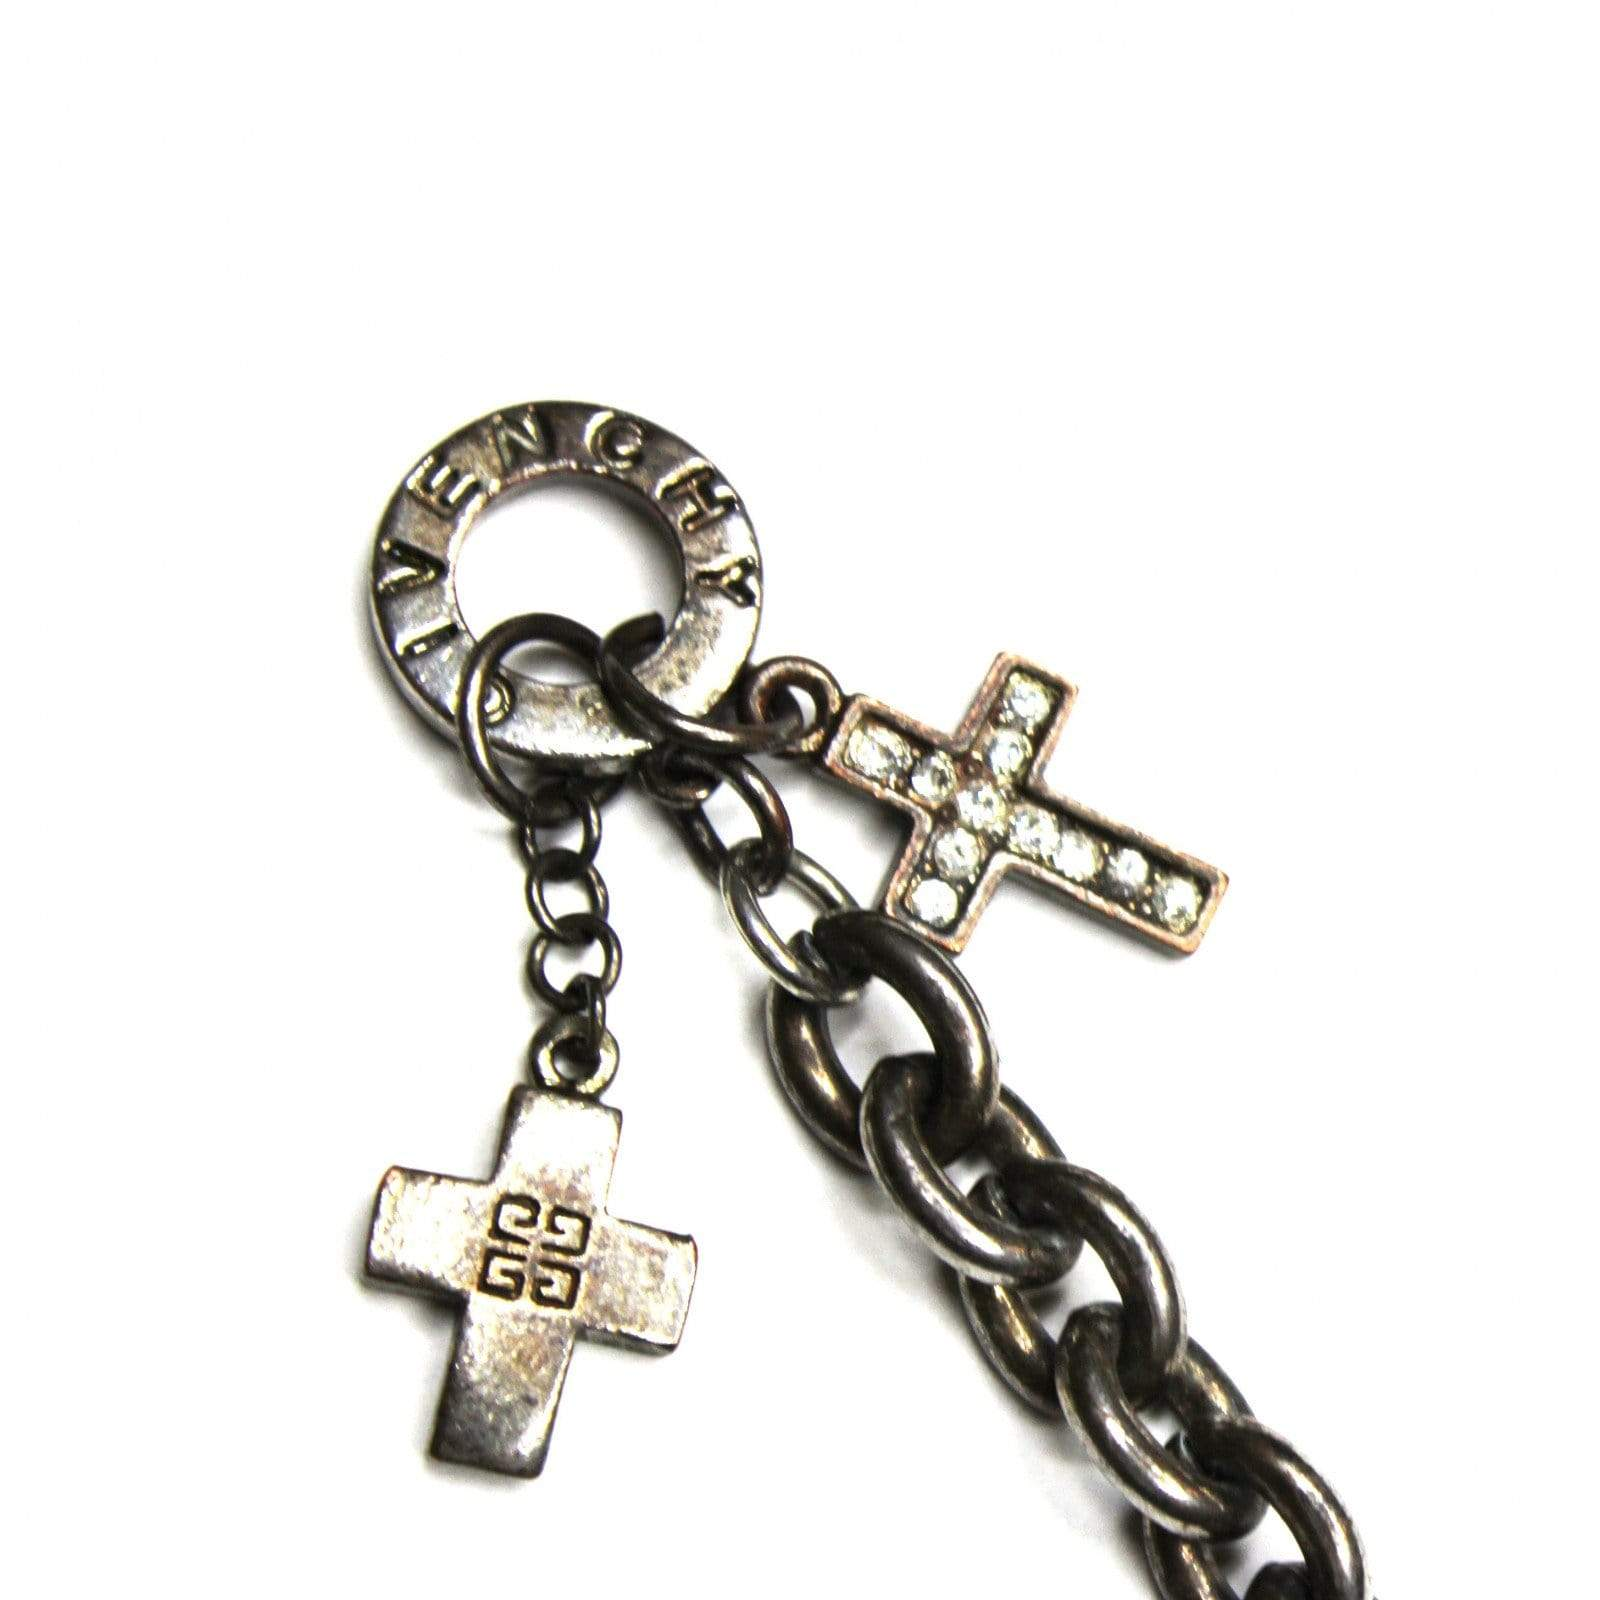 Silver Givenchy Cross Charm Bracelet with Crystal Accents RSTKD Vintage